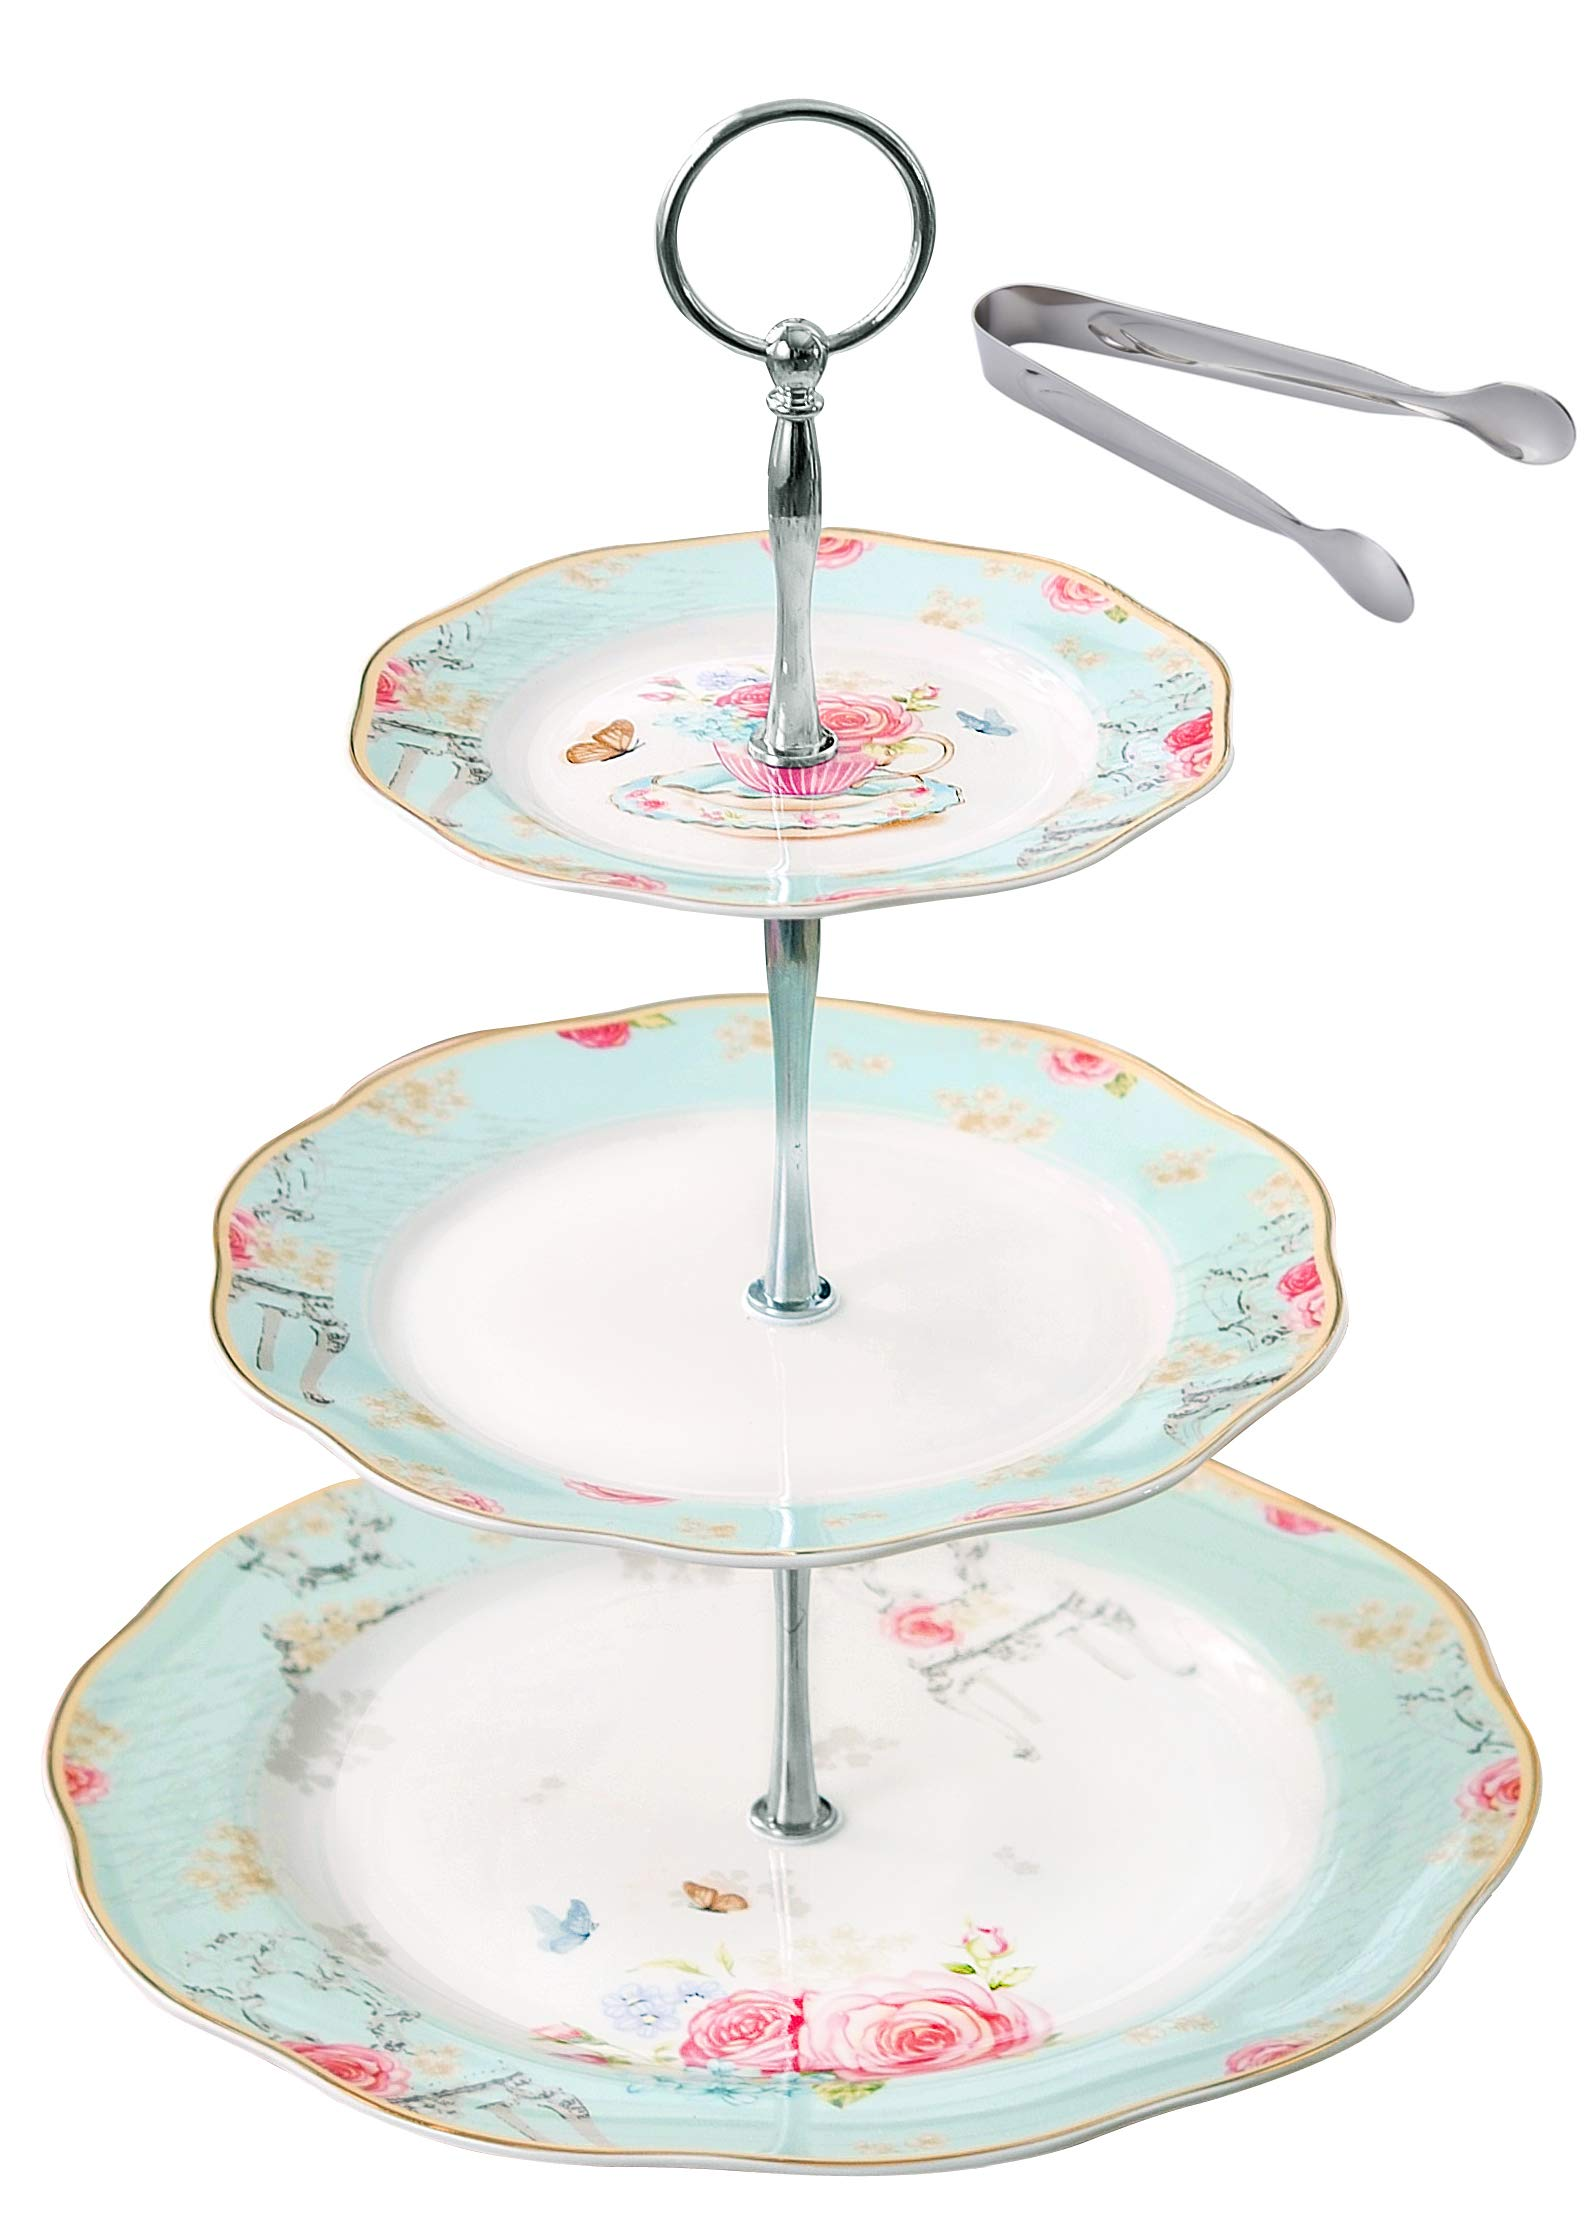 Jusalpha Light Blue 3-tier Ceramic Cake Stand- Cupcake Stand- Tea Party Pastry Serving platter in Gift Box (FD-QD3T)